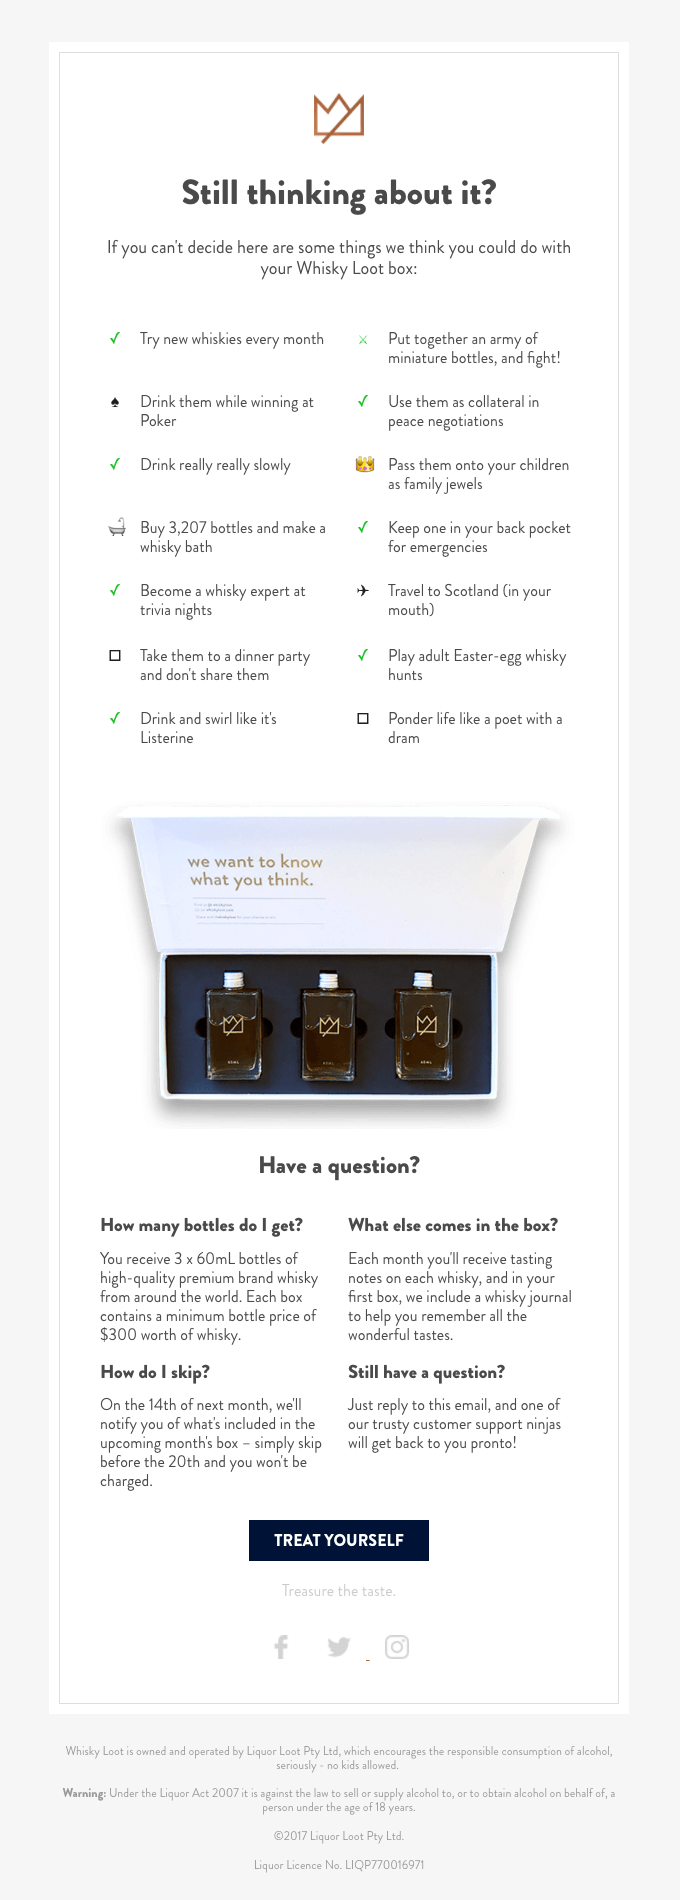 7 Automated Email Campaigns That Win Customers And Keep Them Coming Back Main Circuit Breaker Shut Off Tip Ask The Builder Whisky Loot Addresses Hesitations With Their Abandoned Cart Automation Overtly Listing Product Benefits Including Faqs To Push Users Complete